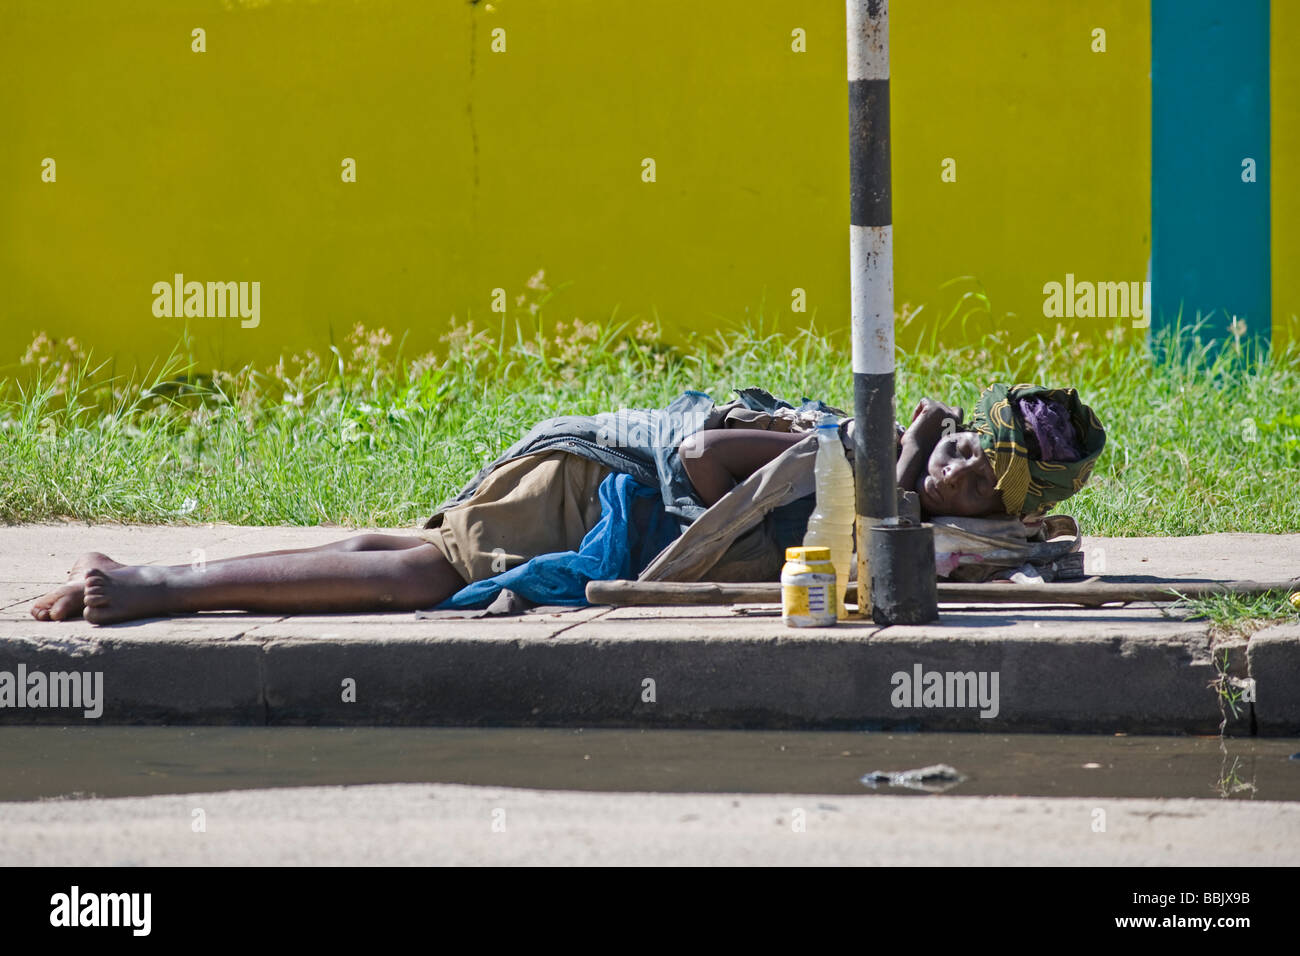 Homeless woman sleeps on the sidewalk Quelimane Mozambique - Stock Image